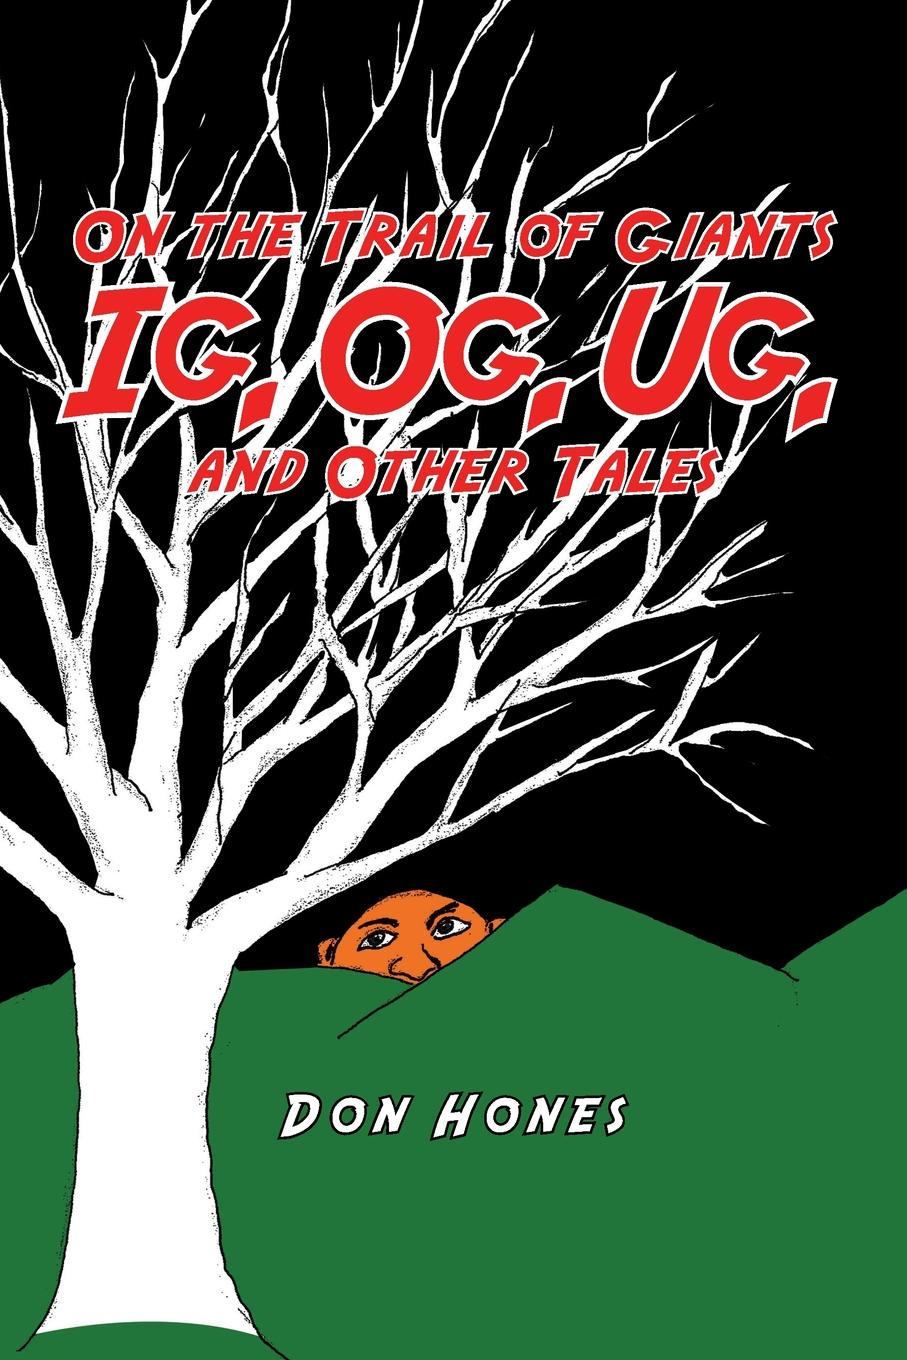 Don Hones On the Trail of Giants Ig, Og, Ug, and Other Tales. Ig, Og, Ug, and Other Tales llamas in pyjamas and other tales with cd